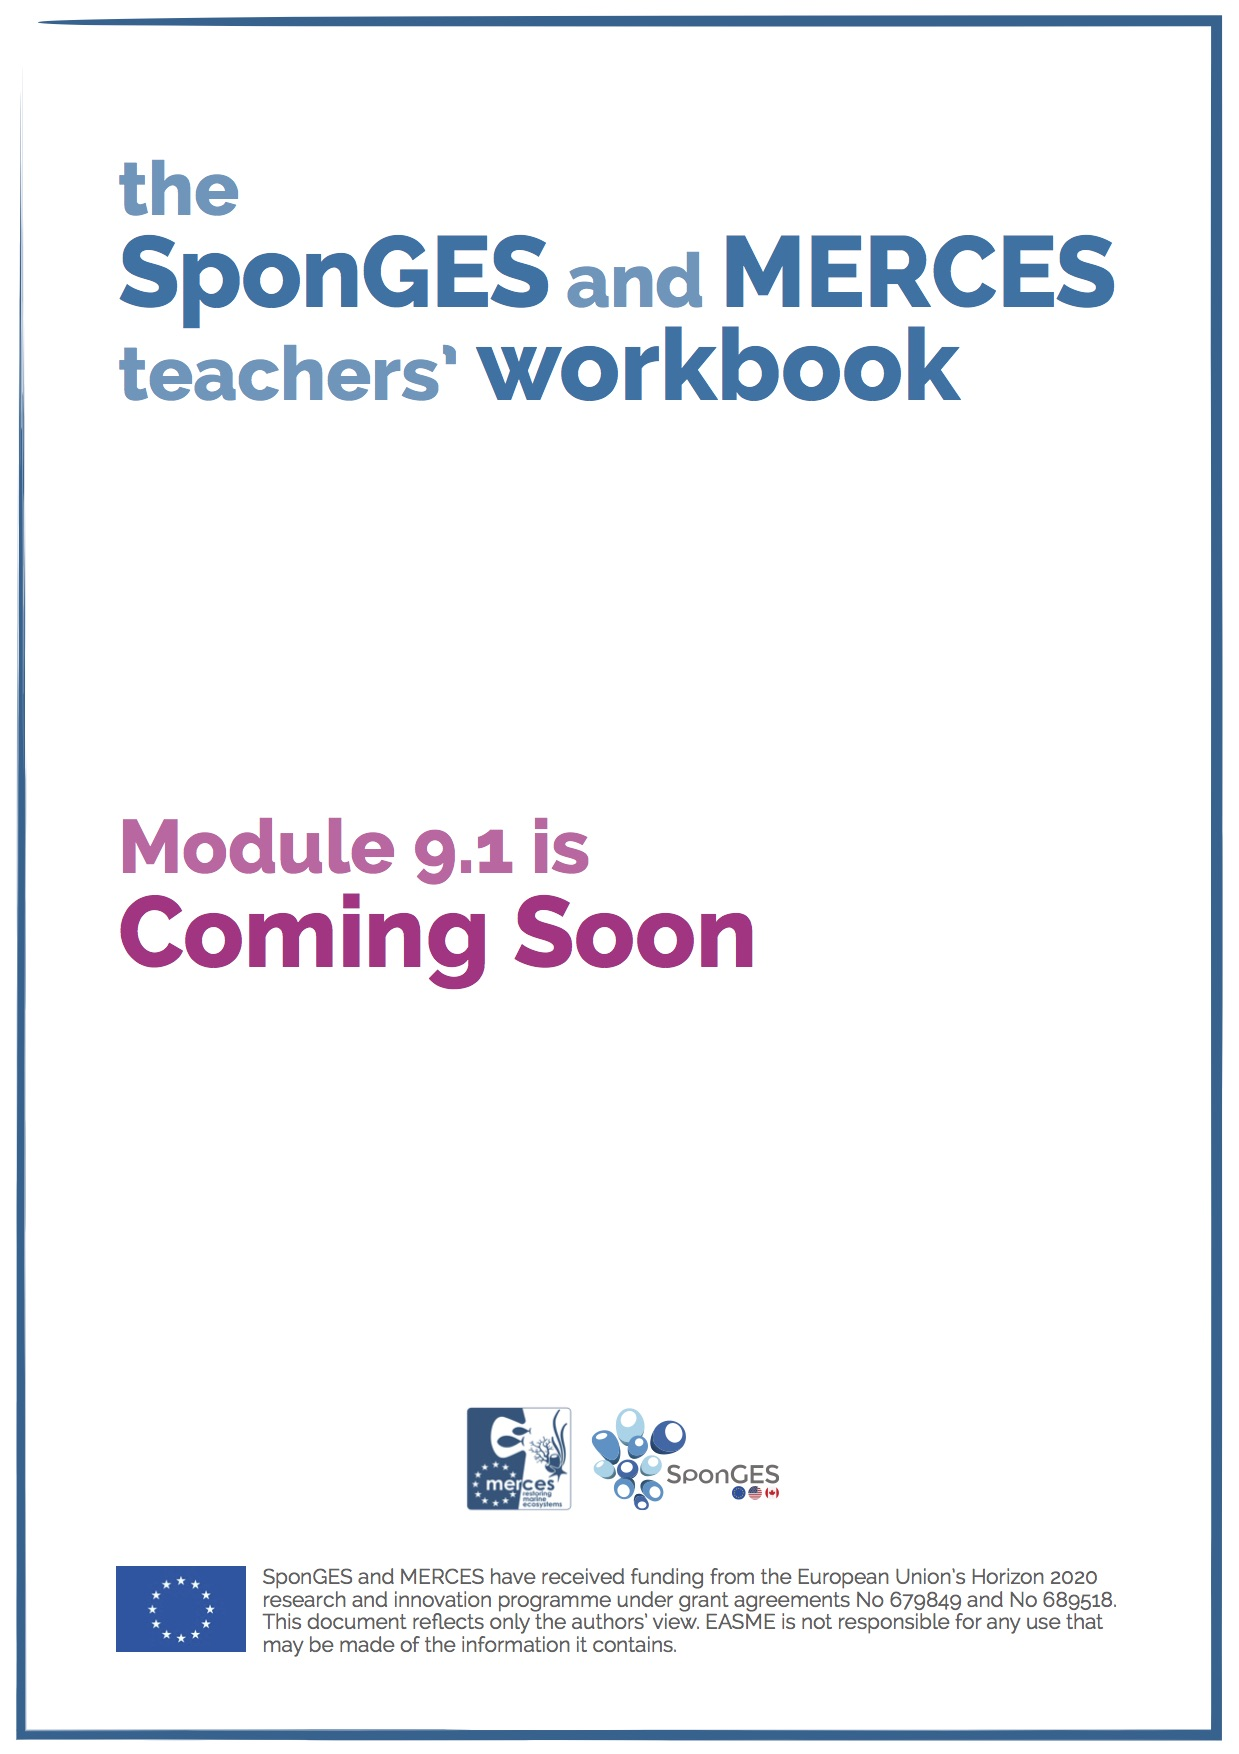 Module 9.1 of the SponGES and MERCES teachers' workbook